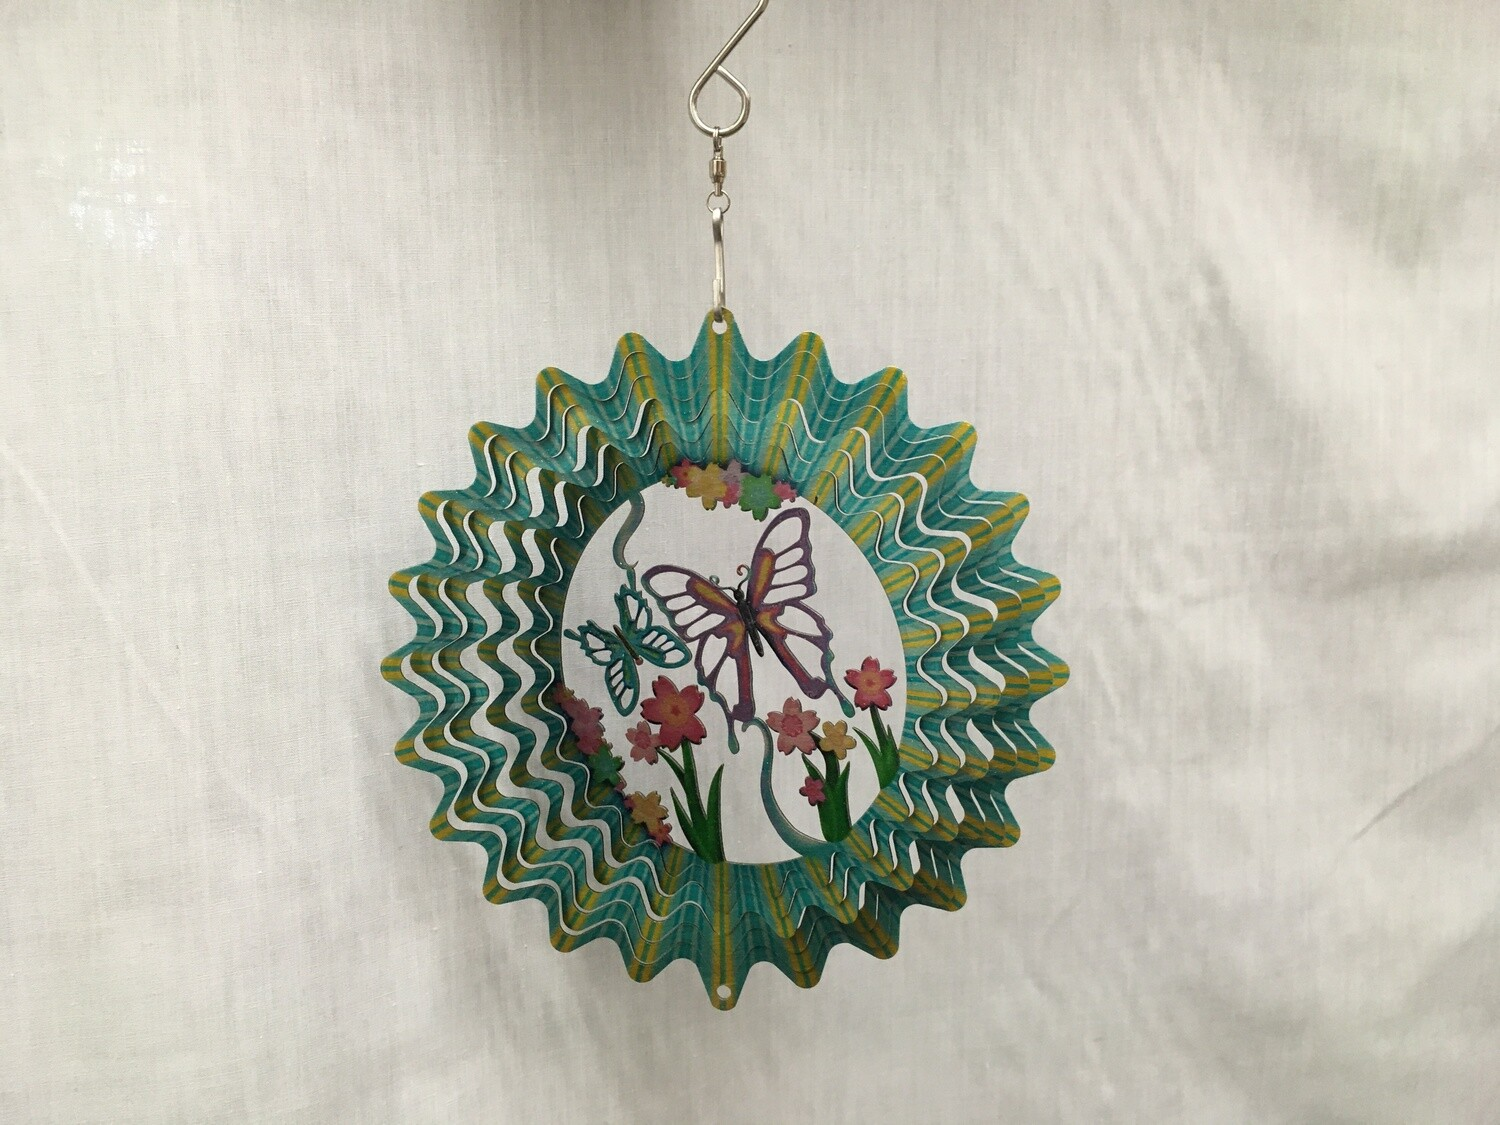 Blue Butterfly Small - Cut Out Design Wind Spinner